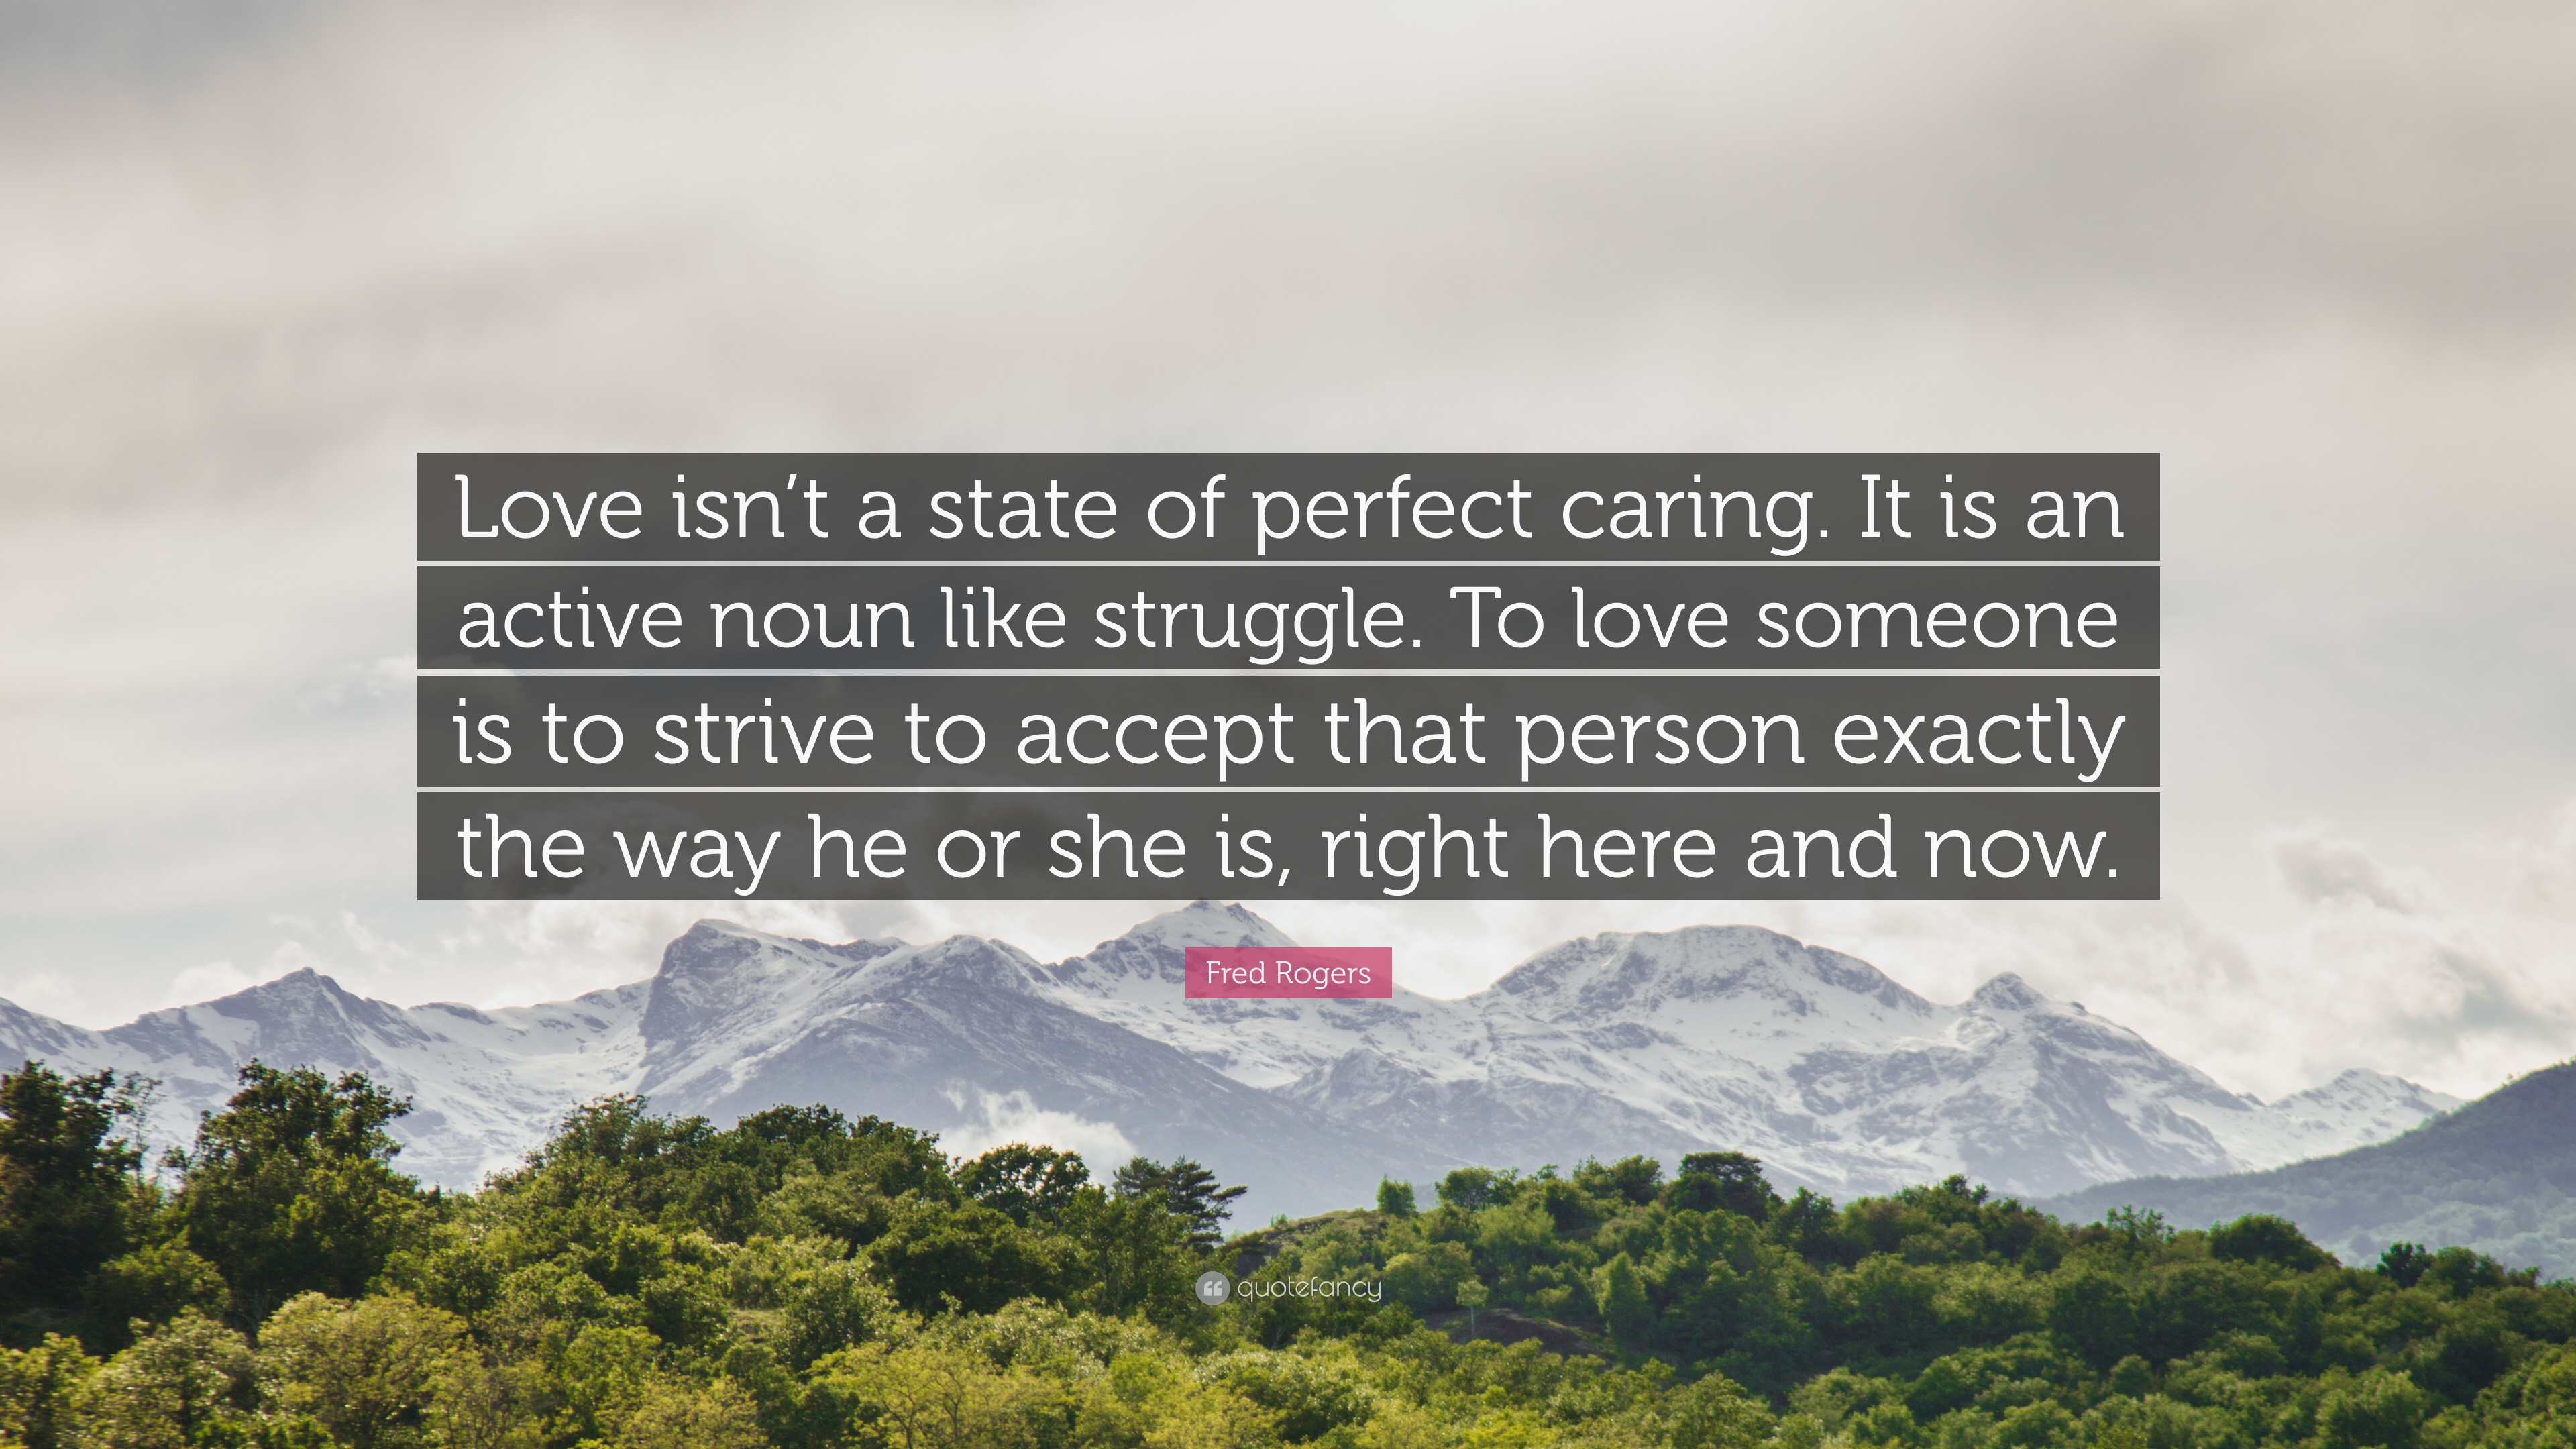 Fred Rogers Quote Love Isn T A State Of Perfect Caring It Is An Active Noun Like Struggle To Love Someone Is To Strive To Accept That Pe 12 Wallpapers Quotefancy